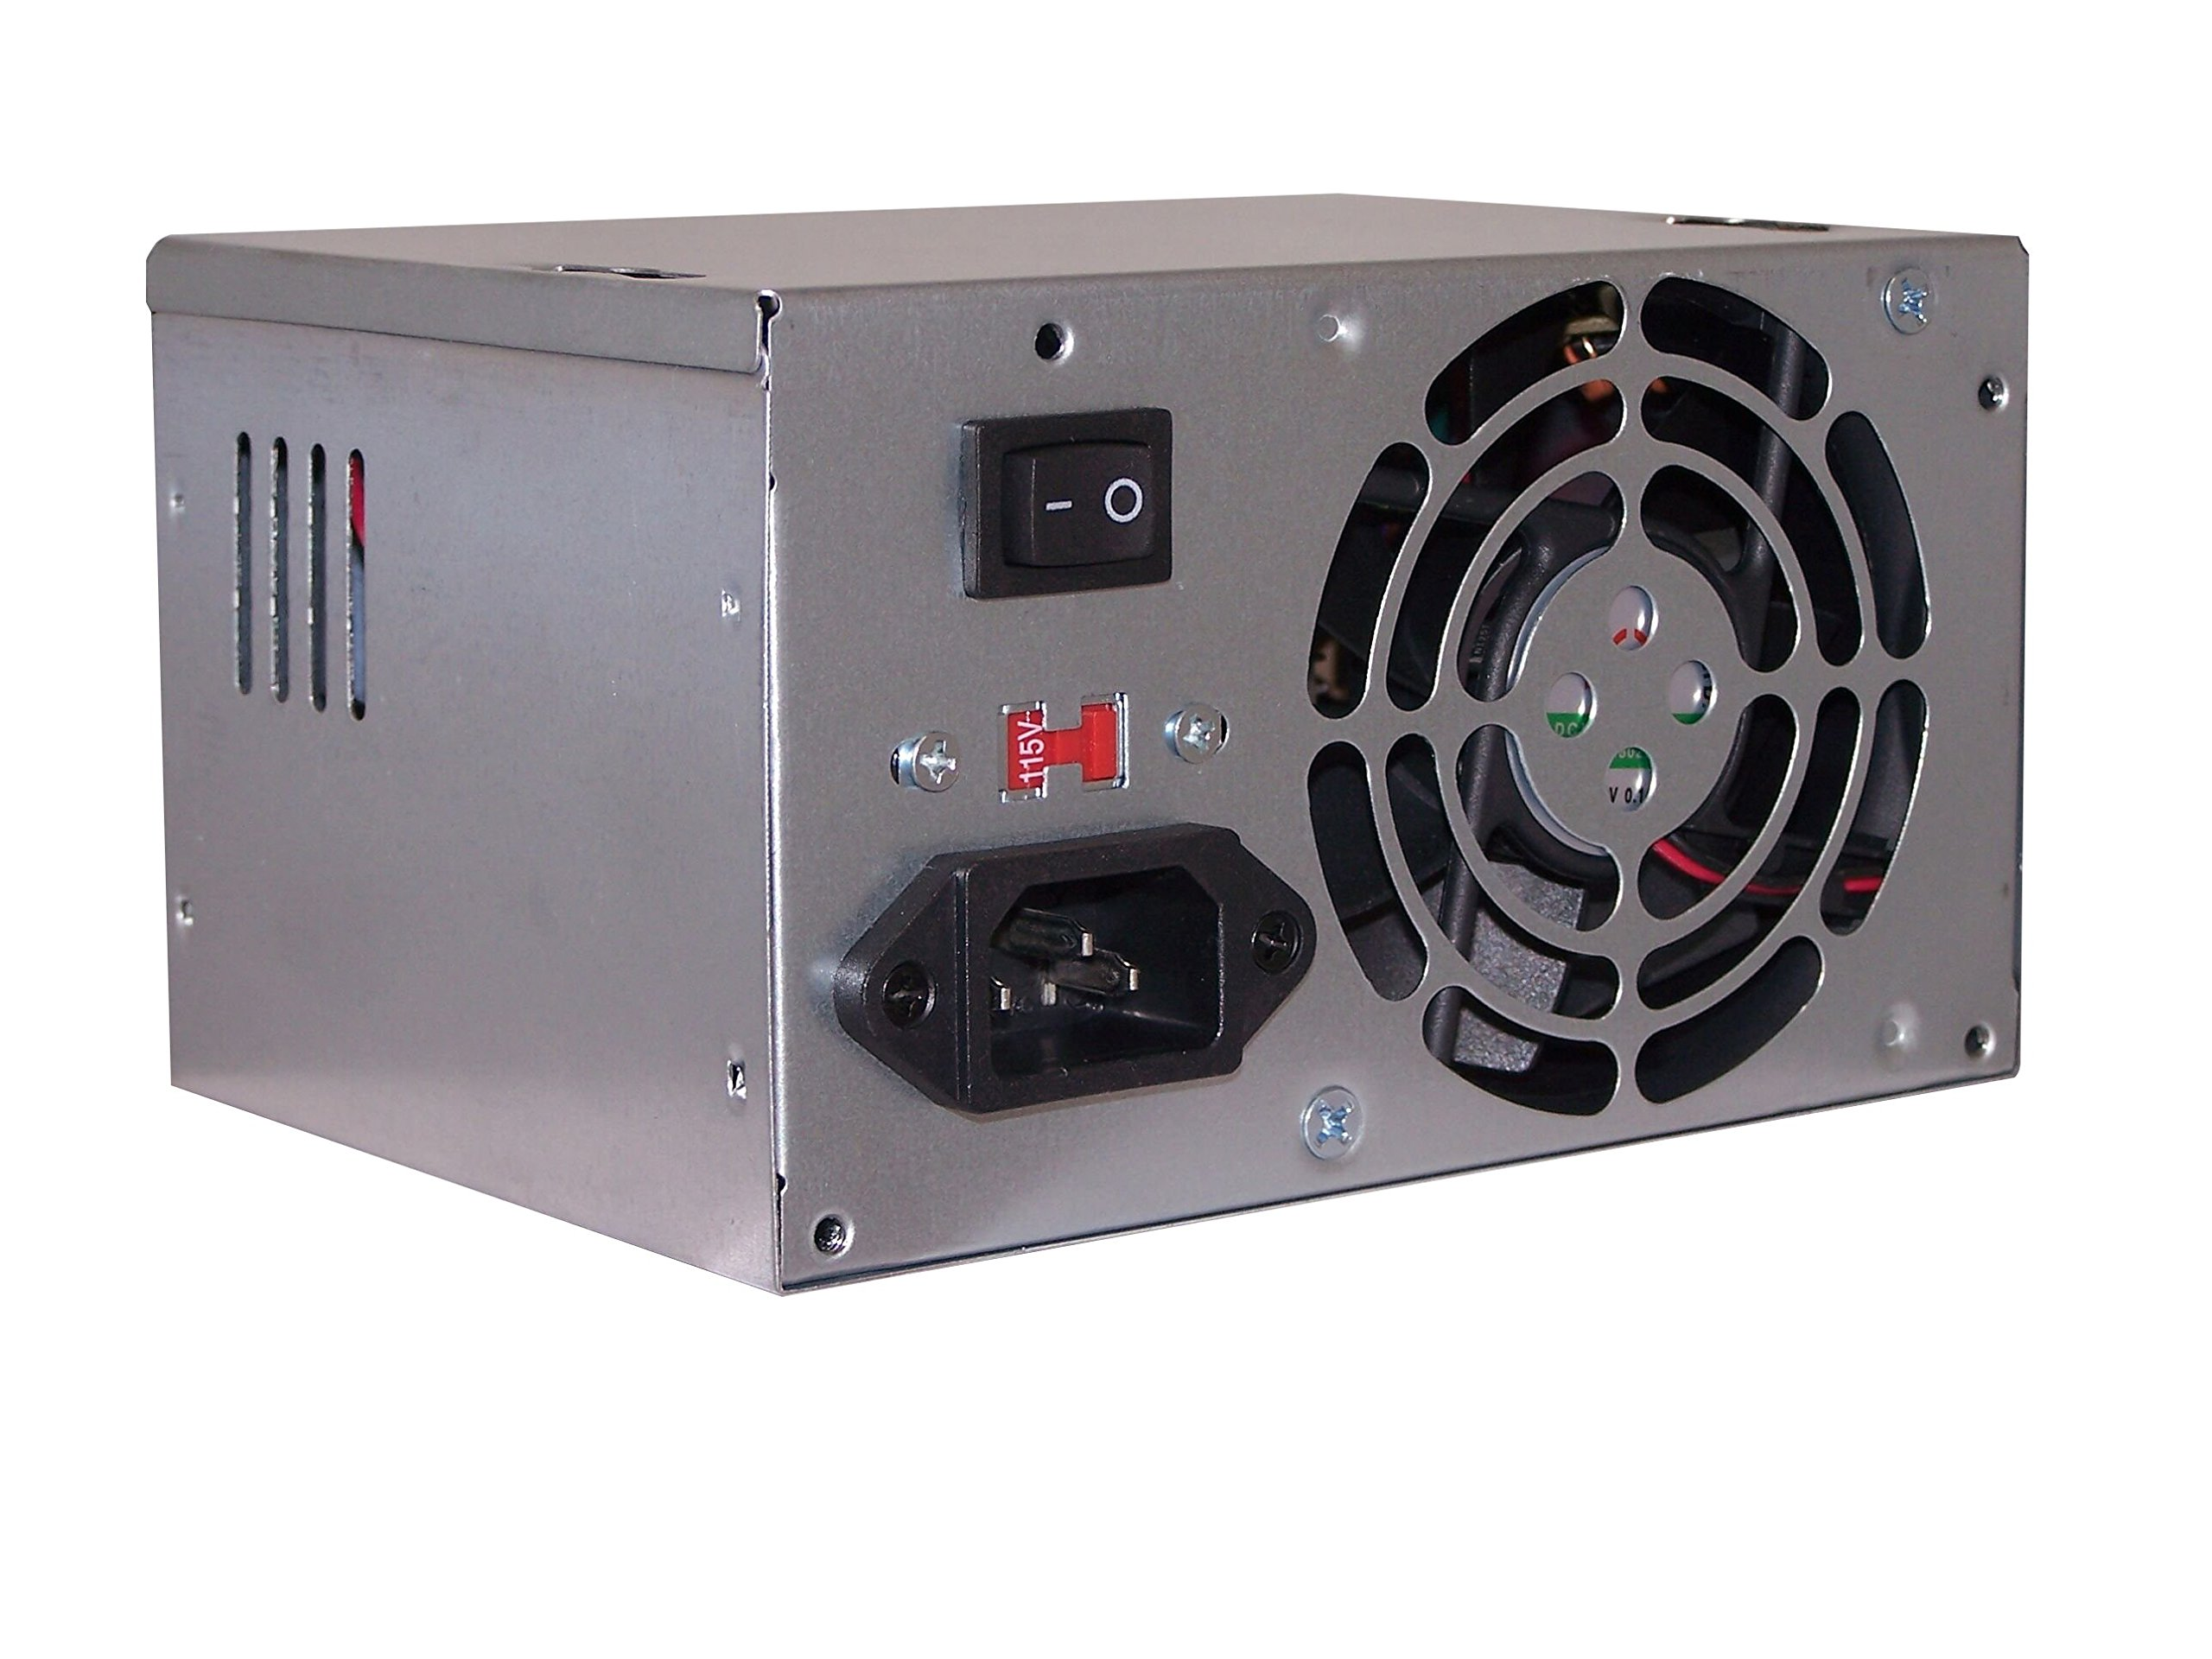 SHARK TECHNOLOGY ATX-500 SATA4 500-Watt 80mm Fan ATX 12V V2.0 4-SATA 24pin PC Power Supply Unit for Desktop Computer ATX Case/ PS3 Mini Tower Chassis